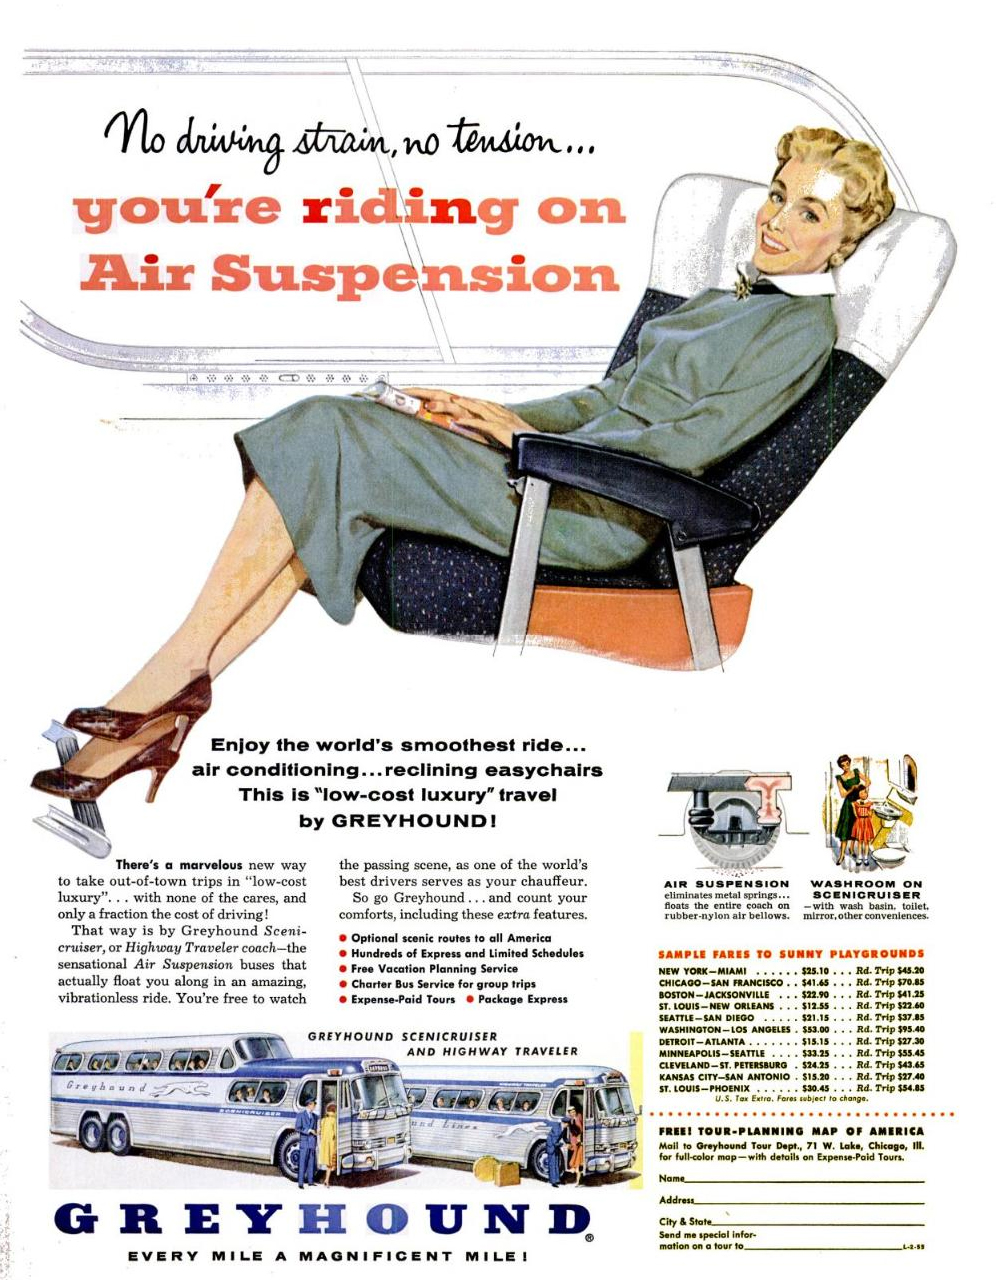 Greyhound Bus advert